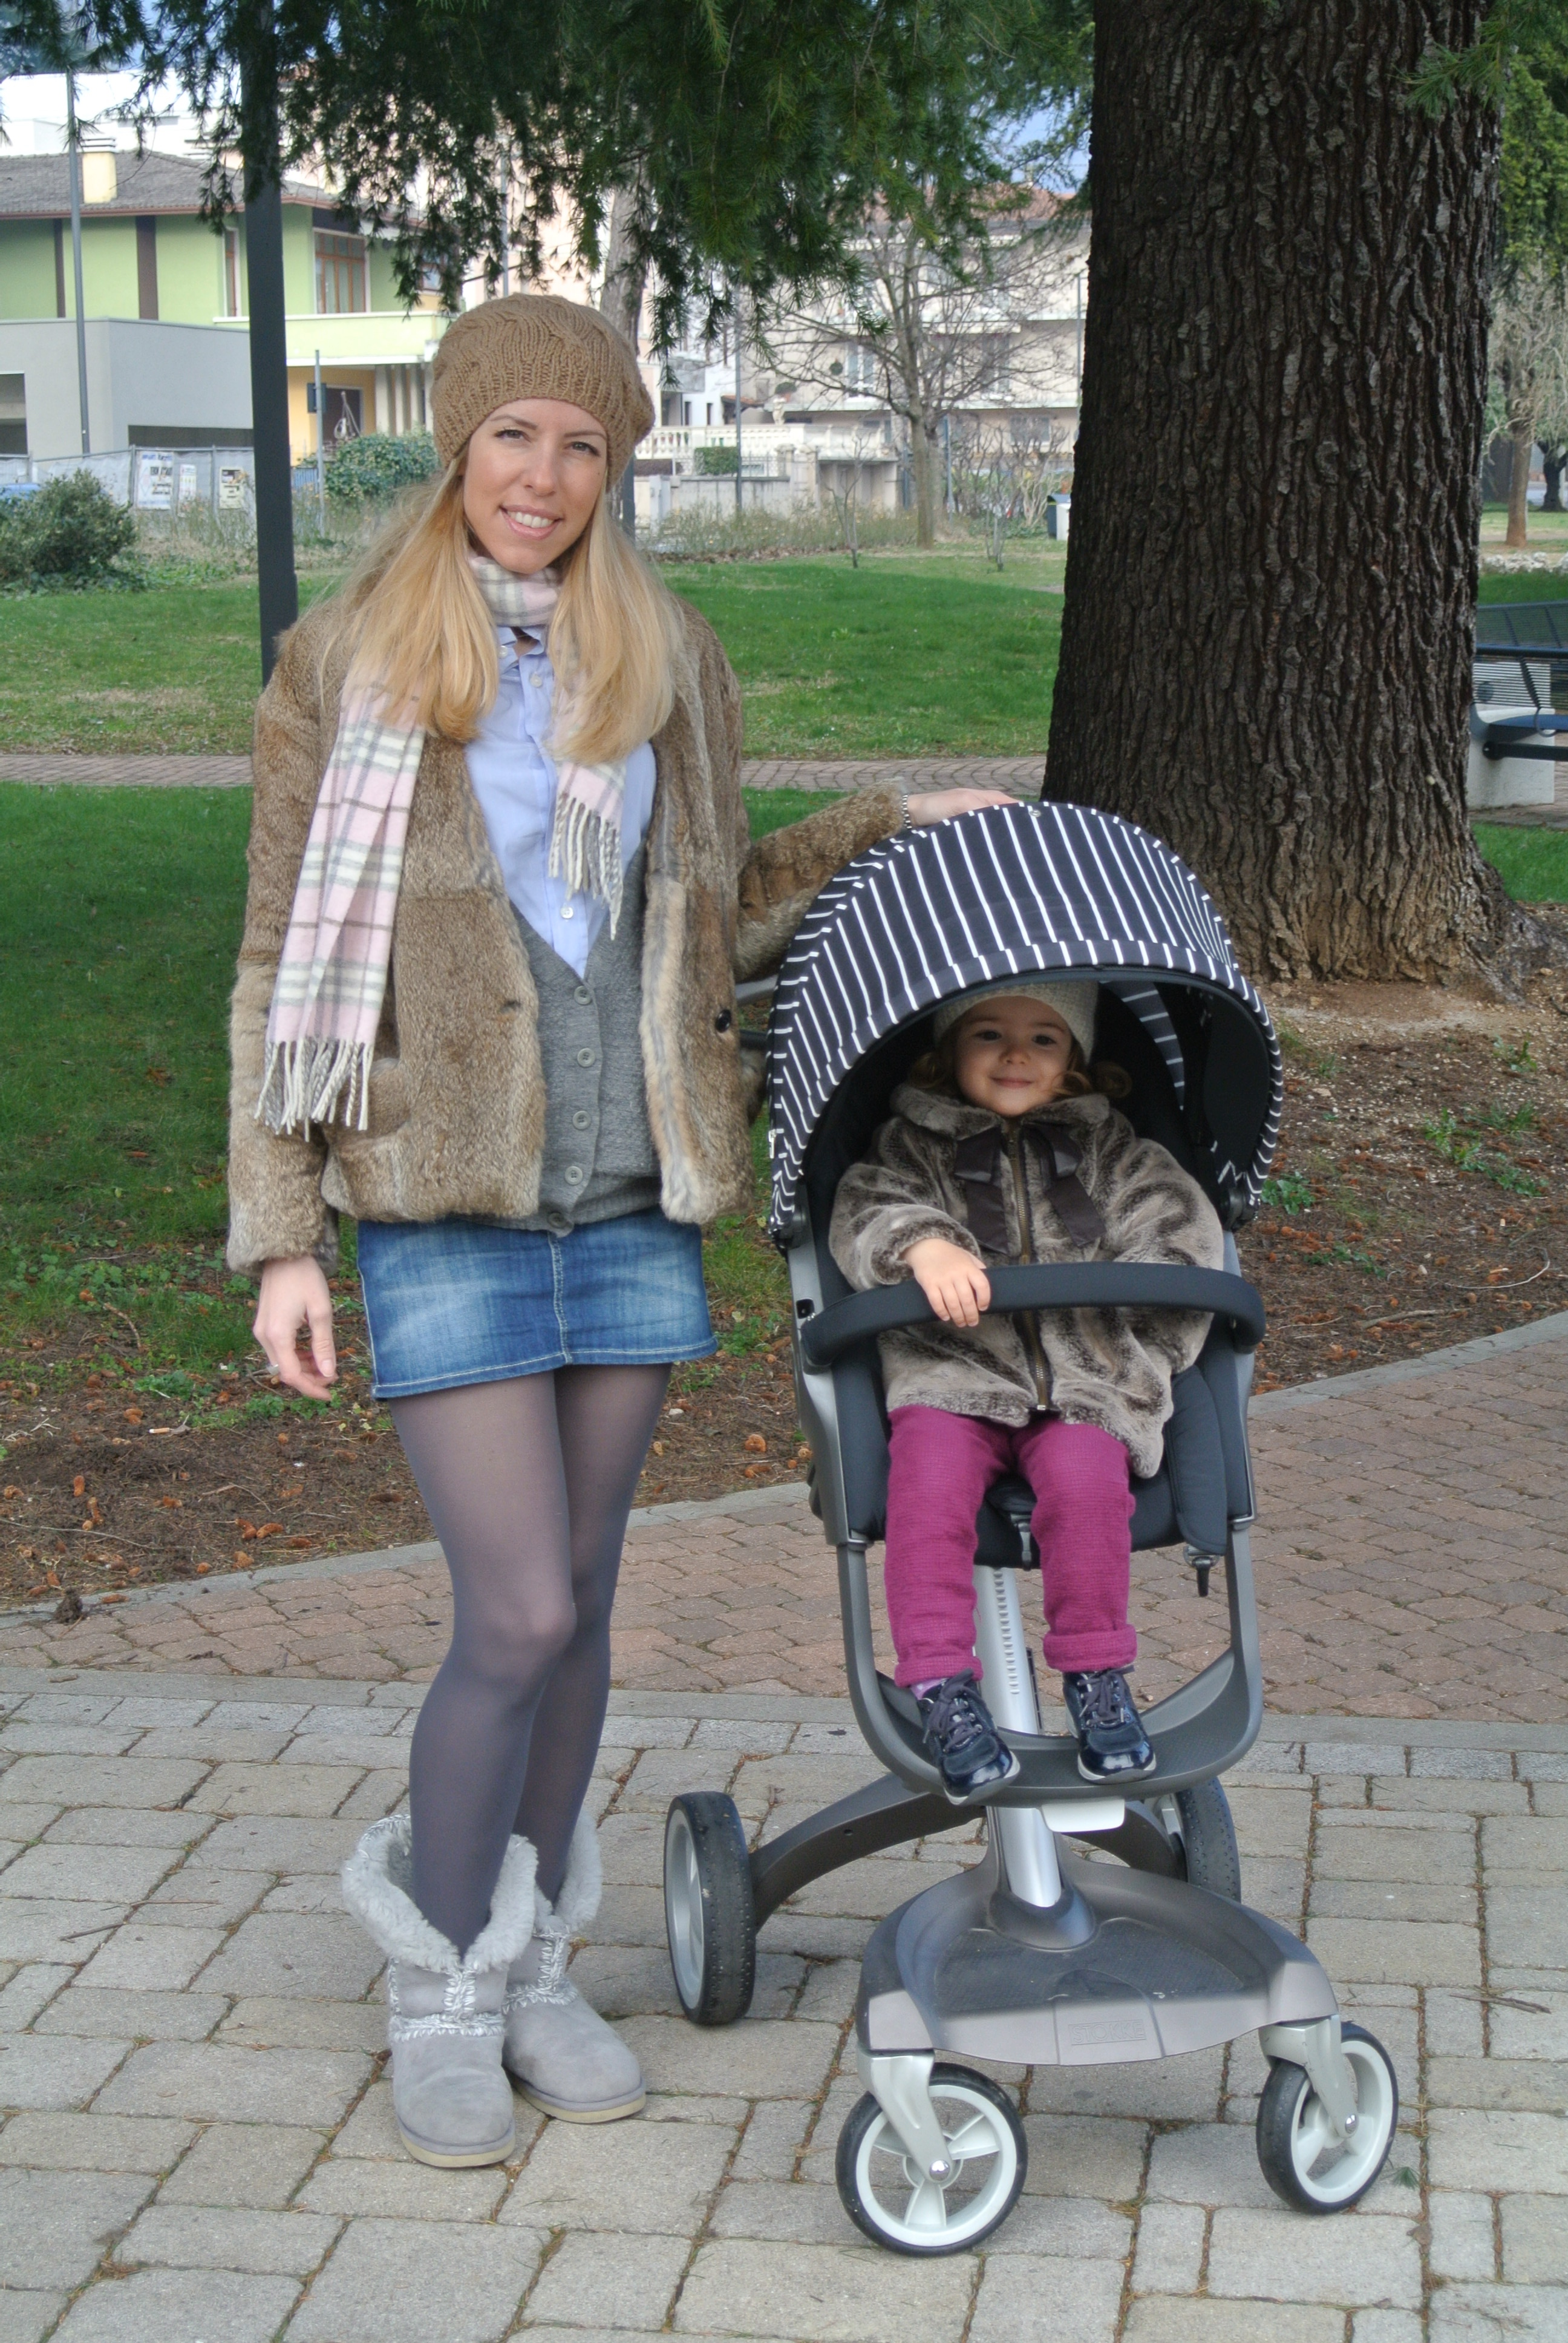 Il nuovo Style Kit dello Stokke è gessato/ The new Style Kit of the Stokke is pinstriped